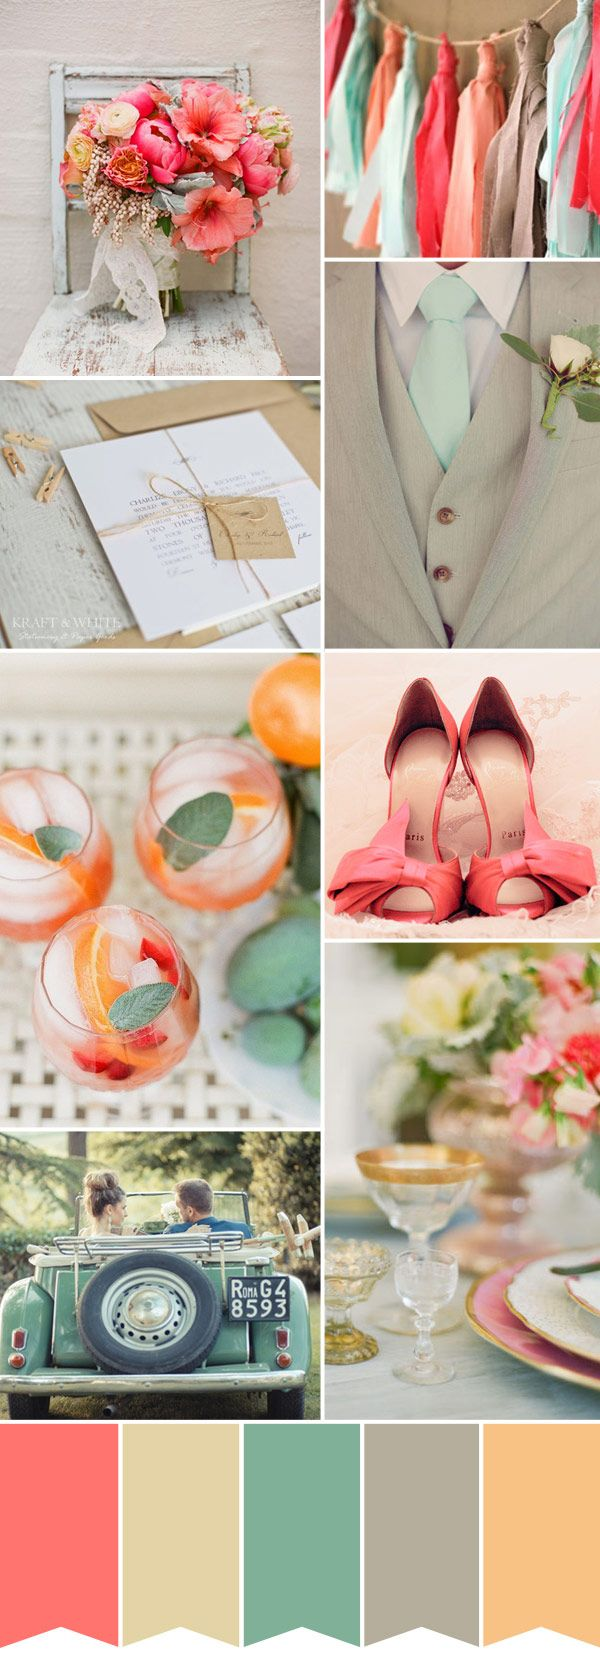 Dreaming of a sunny Spring wedding with this pretty colour palette of mint green, coral pinks and cream - uplifting colours for a celebration.